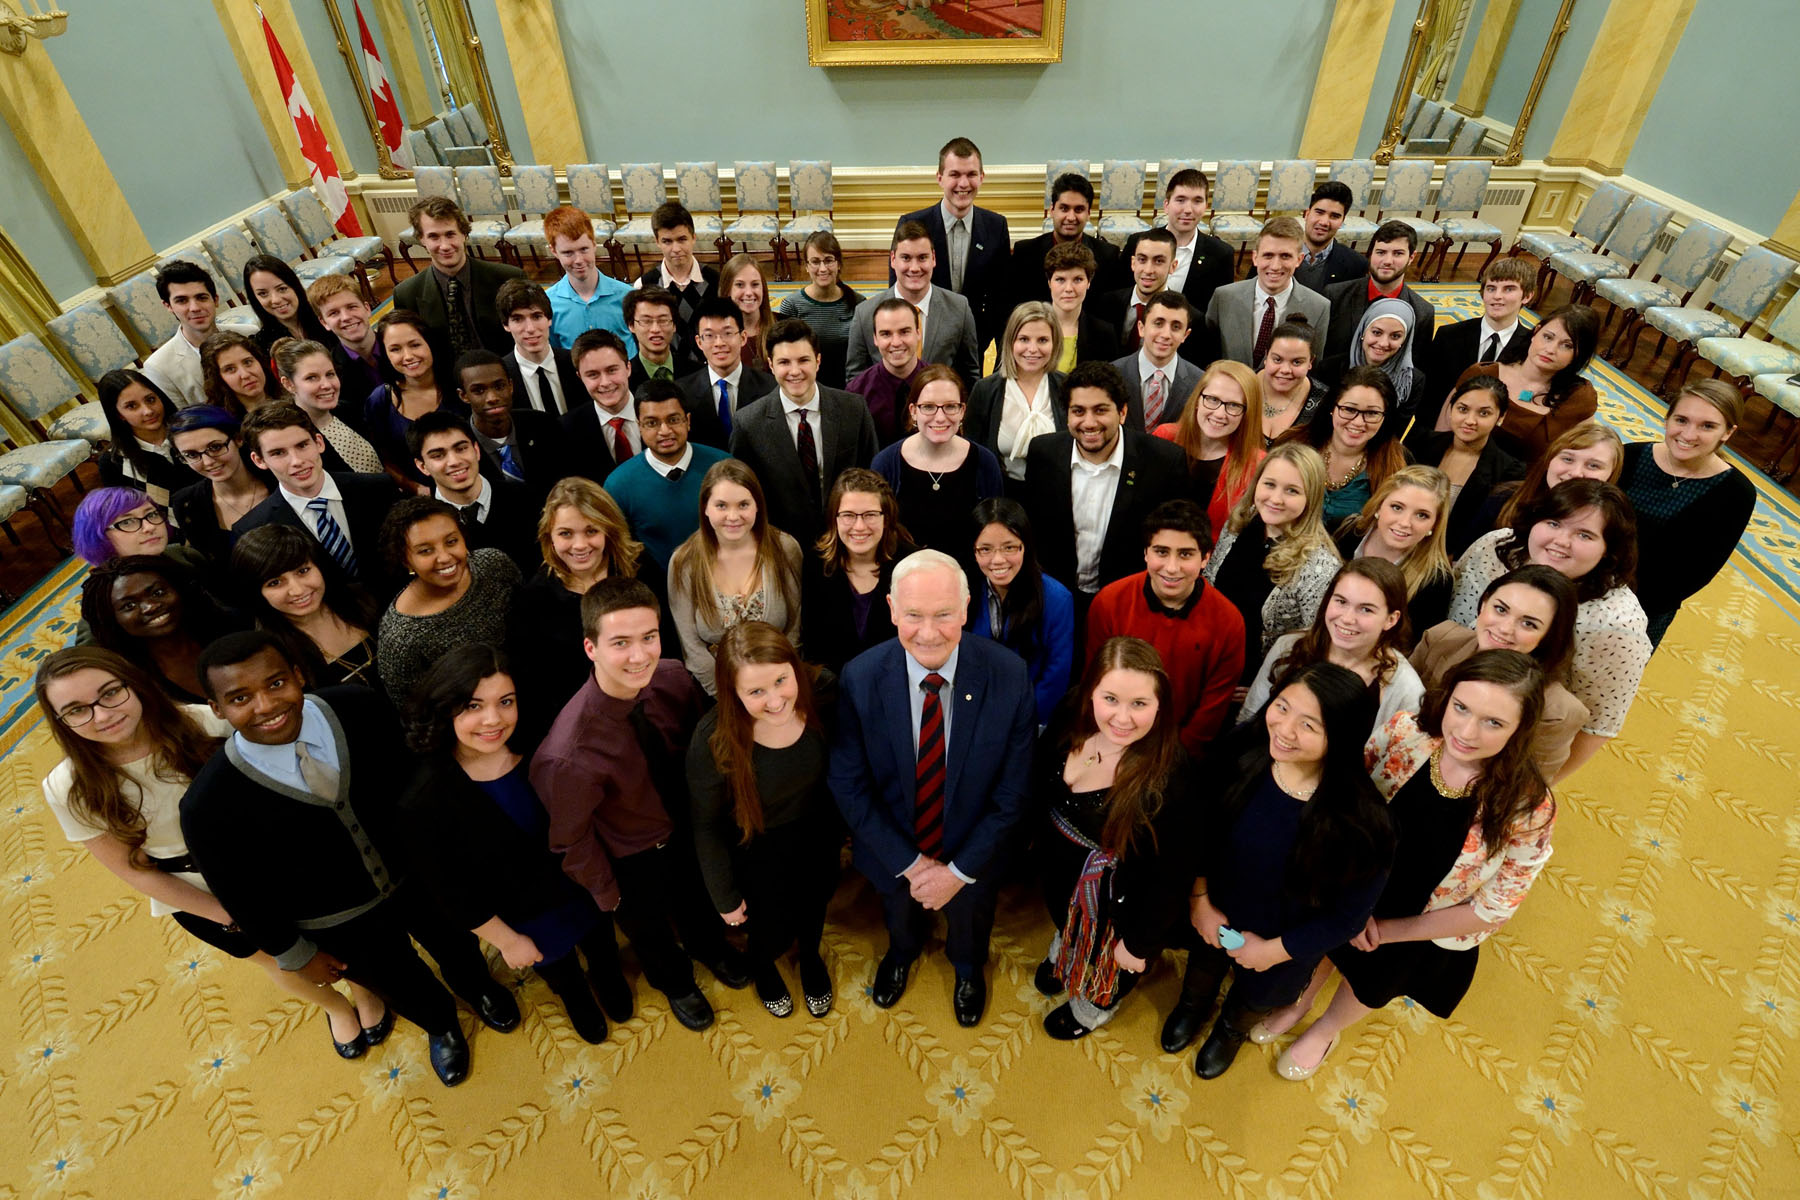 75 youth from the National Capital Region attended the event at Rideau Hall.